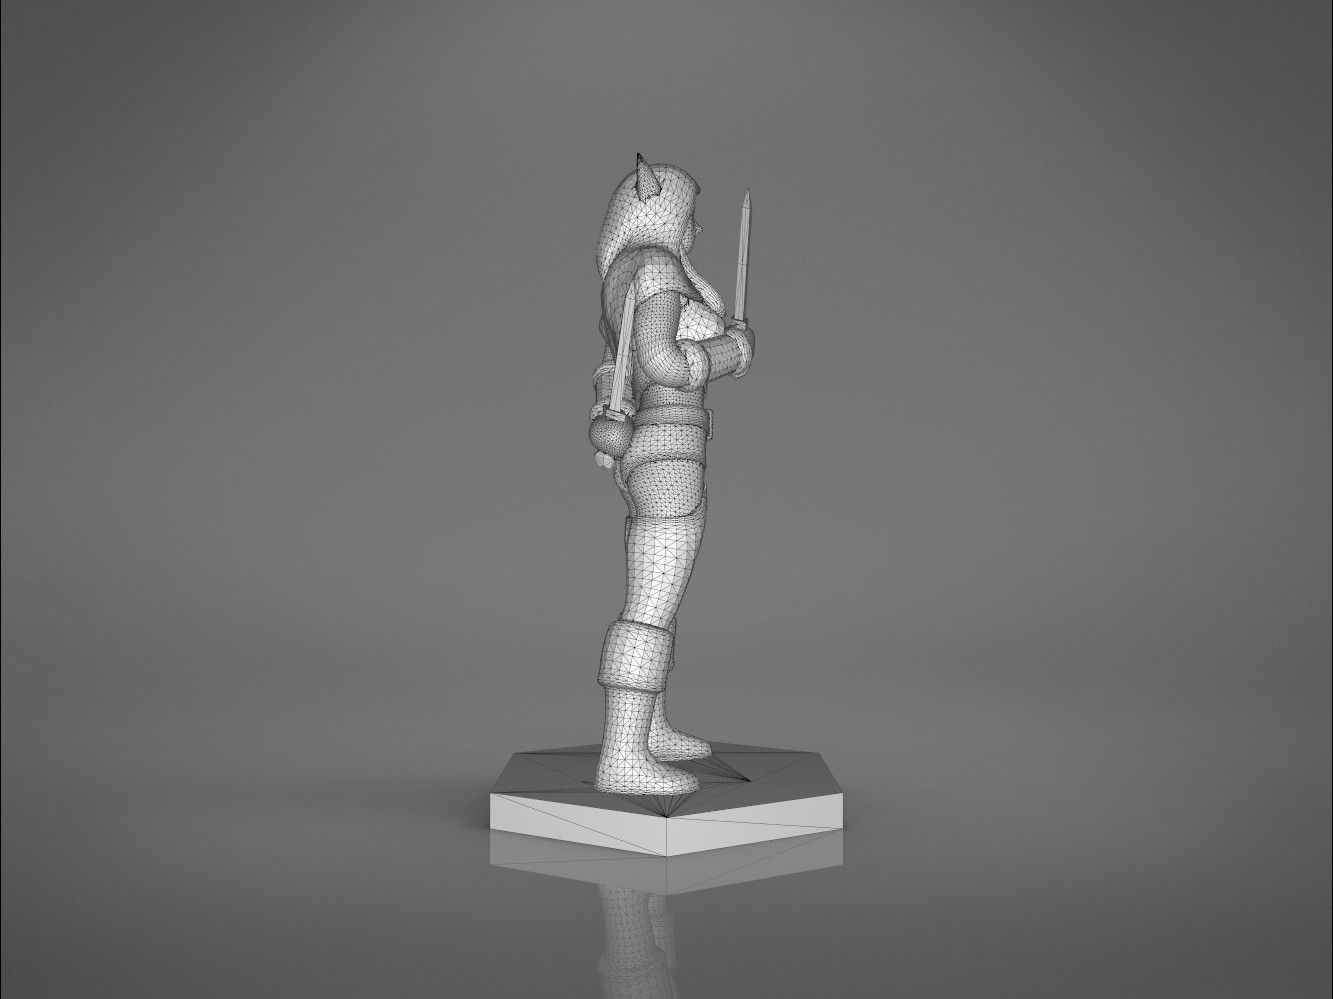 Rogue_2-left_perspective.463.jpg Download STL file ELF ROGUE FEMALE CHARACTER GAME FIGURES 3D print model • 3D printer object, 3D-mon